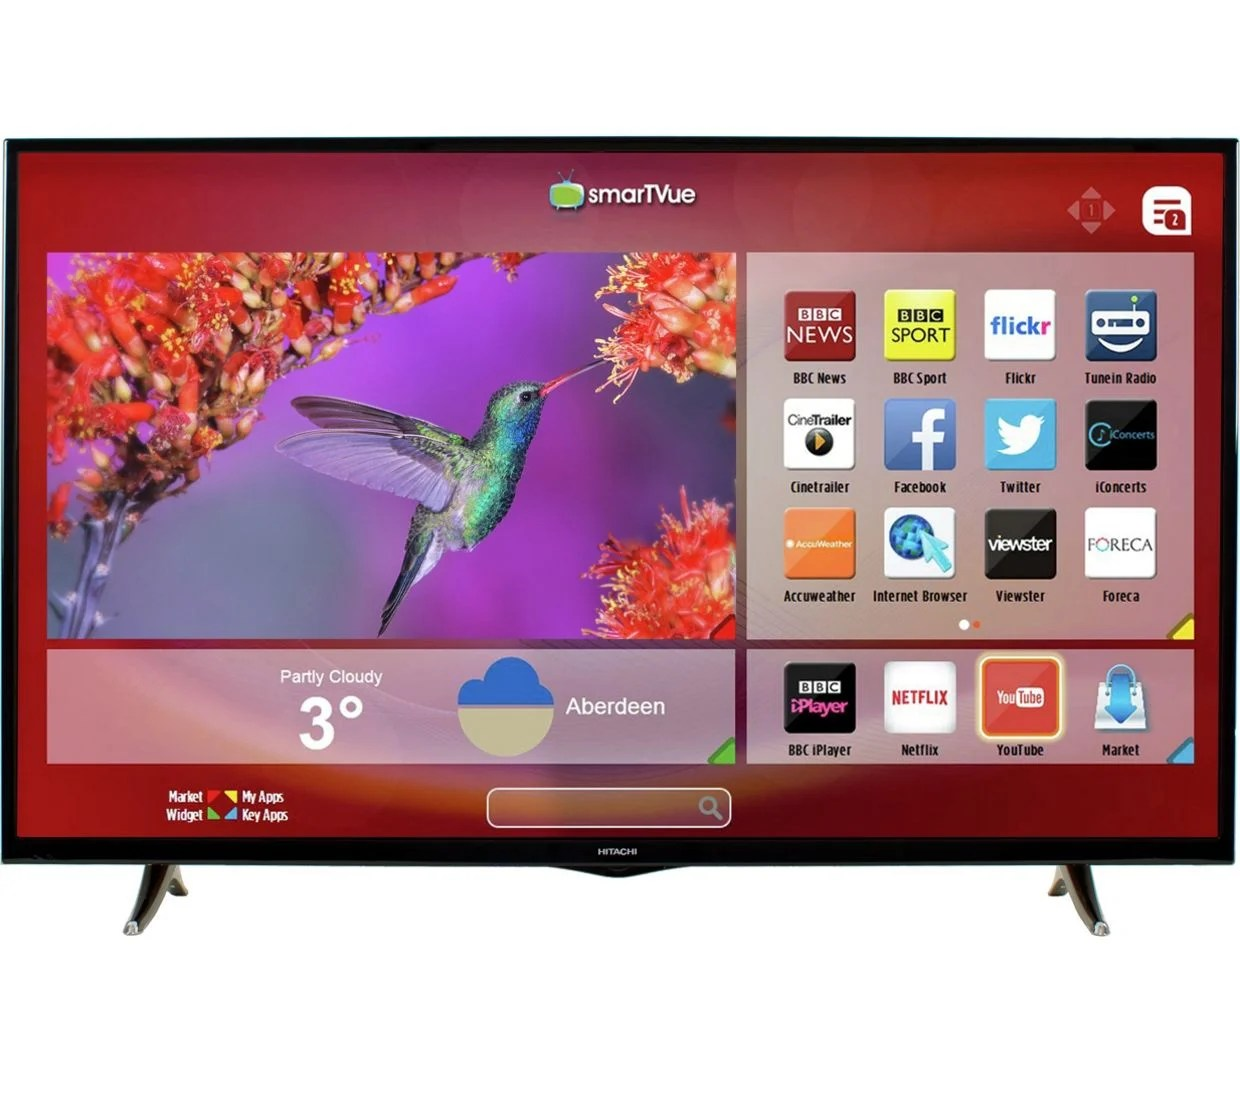 Hitachi TVs explained: Everything you need to know about buying a Hitachi TV | Expert Reviews